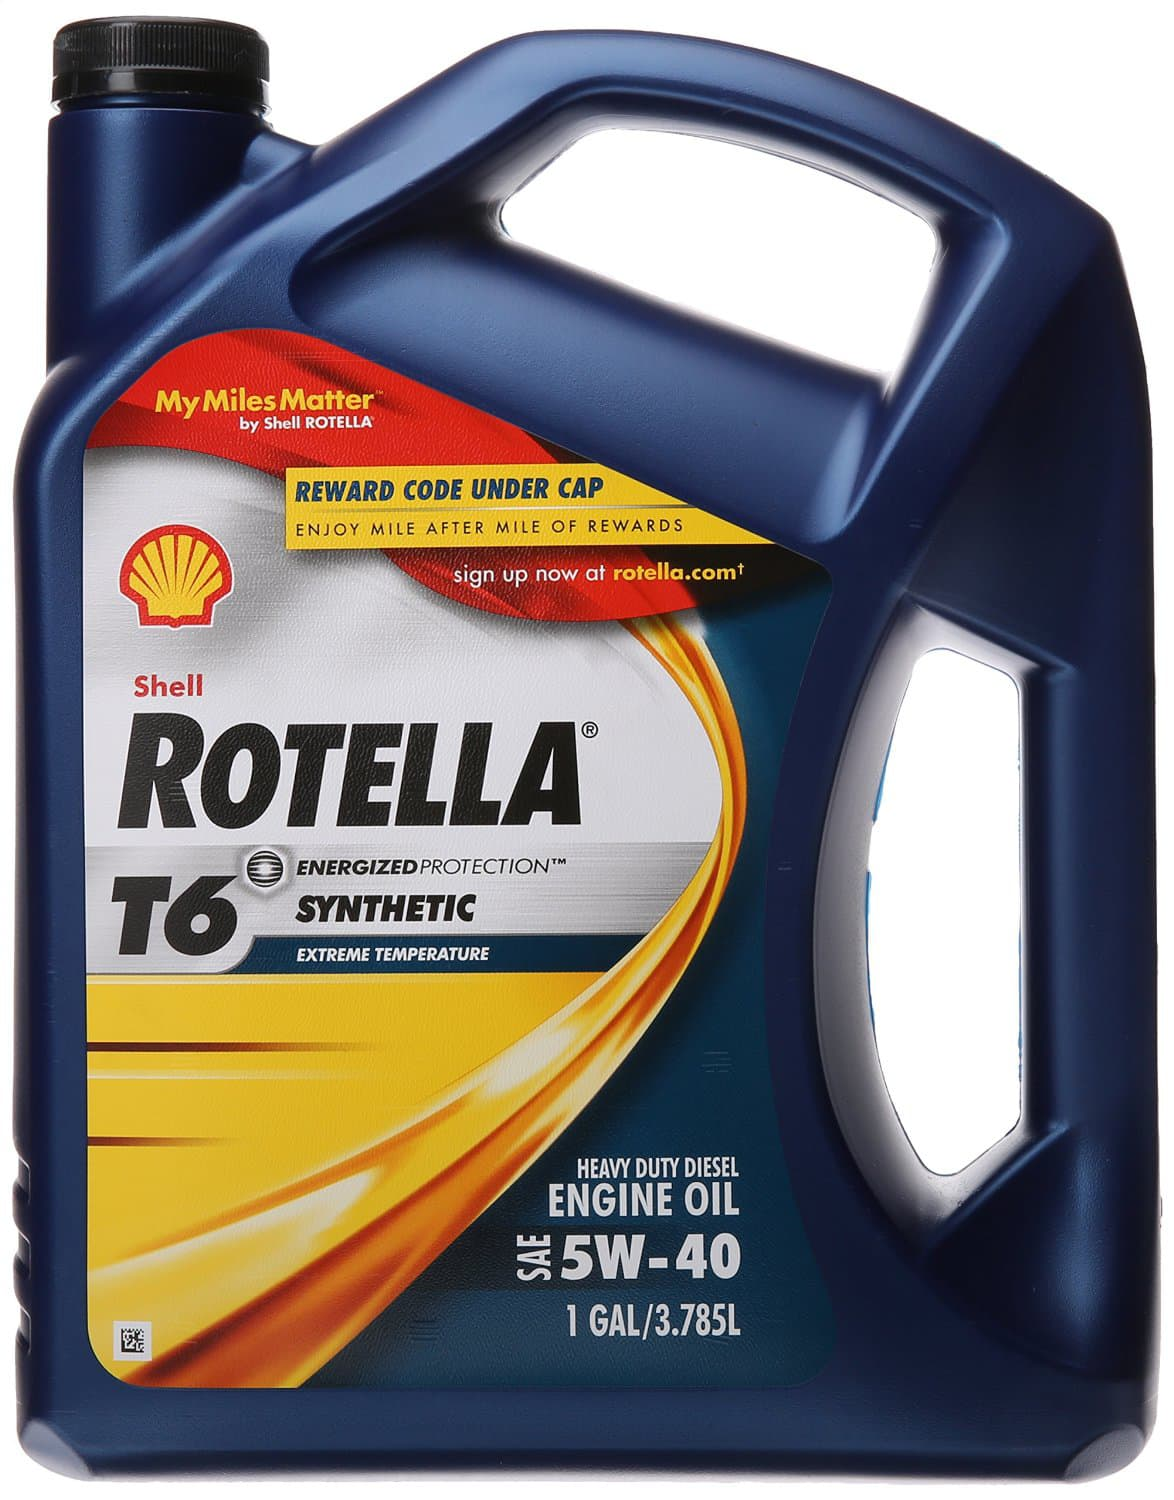 Rotella T6 5W-40 Full Synthetic, Heavy Duty Diesel Engine Oil (CJ-4) - 1 Gallon $16.63 fs / w/S&S@ amazon - $5 MIR= $11.63!!